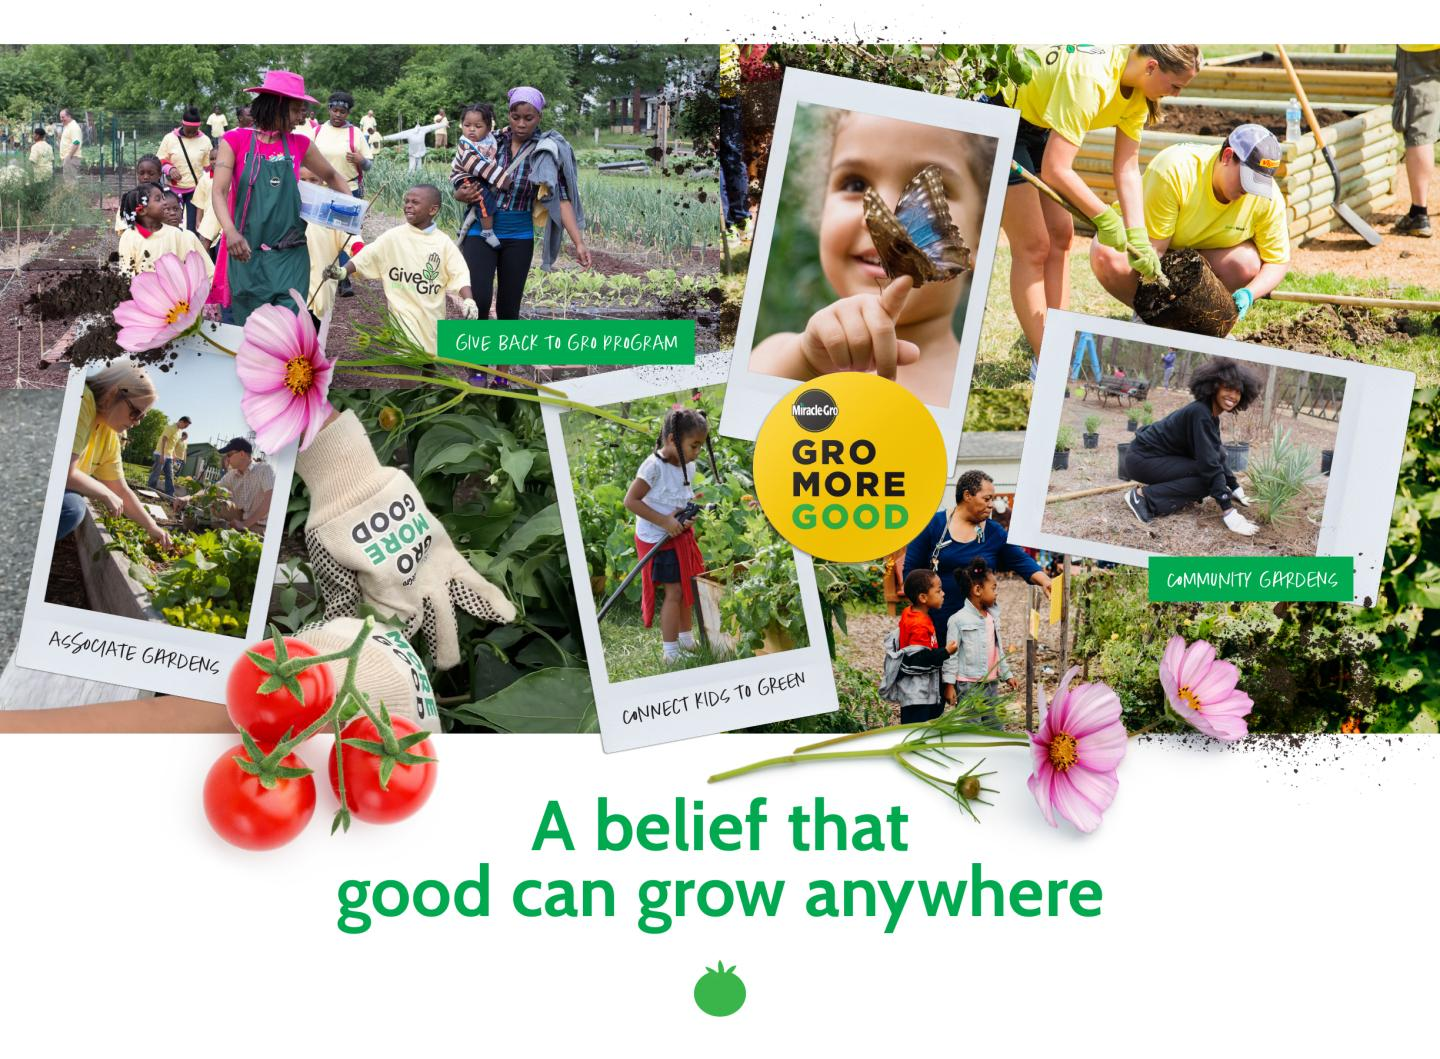 A BELIEF THAT GOOD CAN GROW ANYWHERE